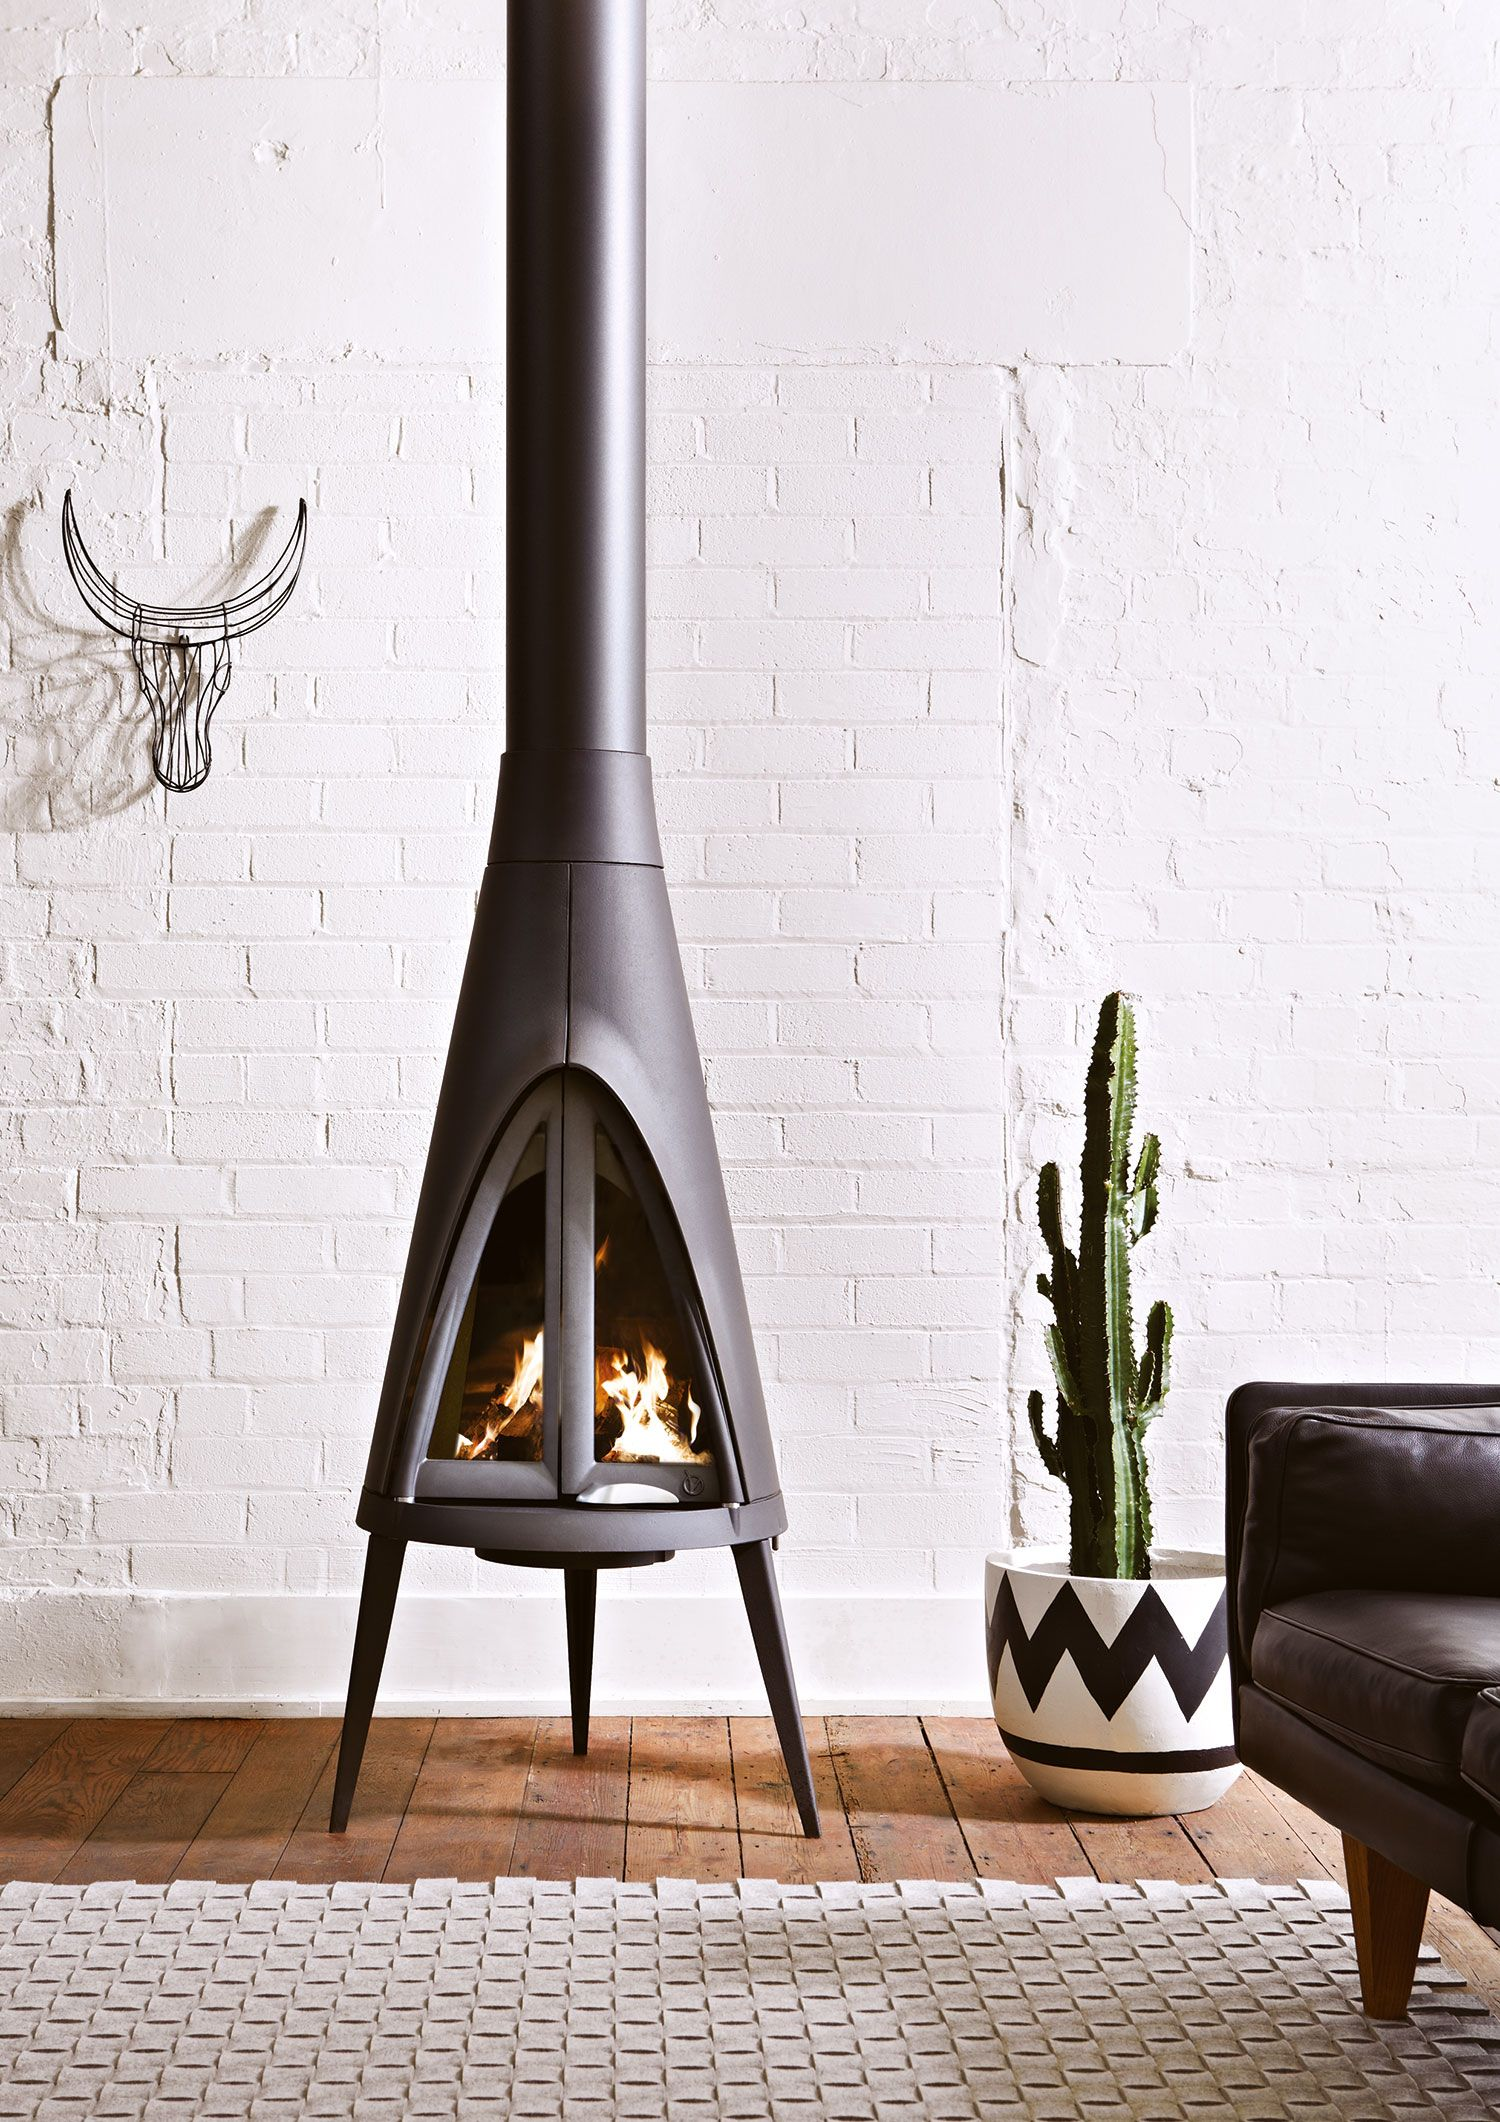 Fuel efficient and environmentally conscious, the Tipi cast iron ...